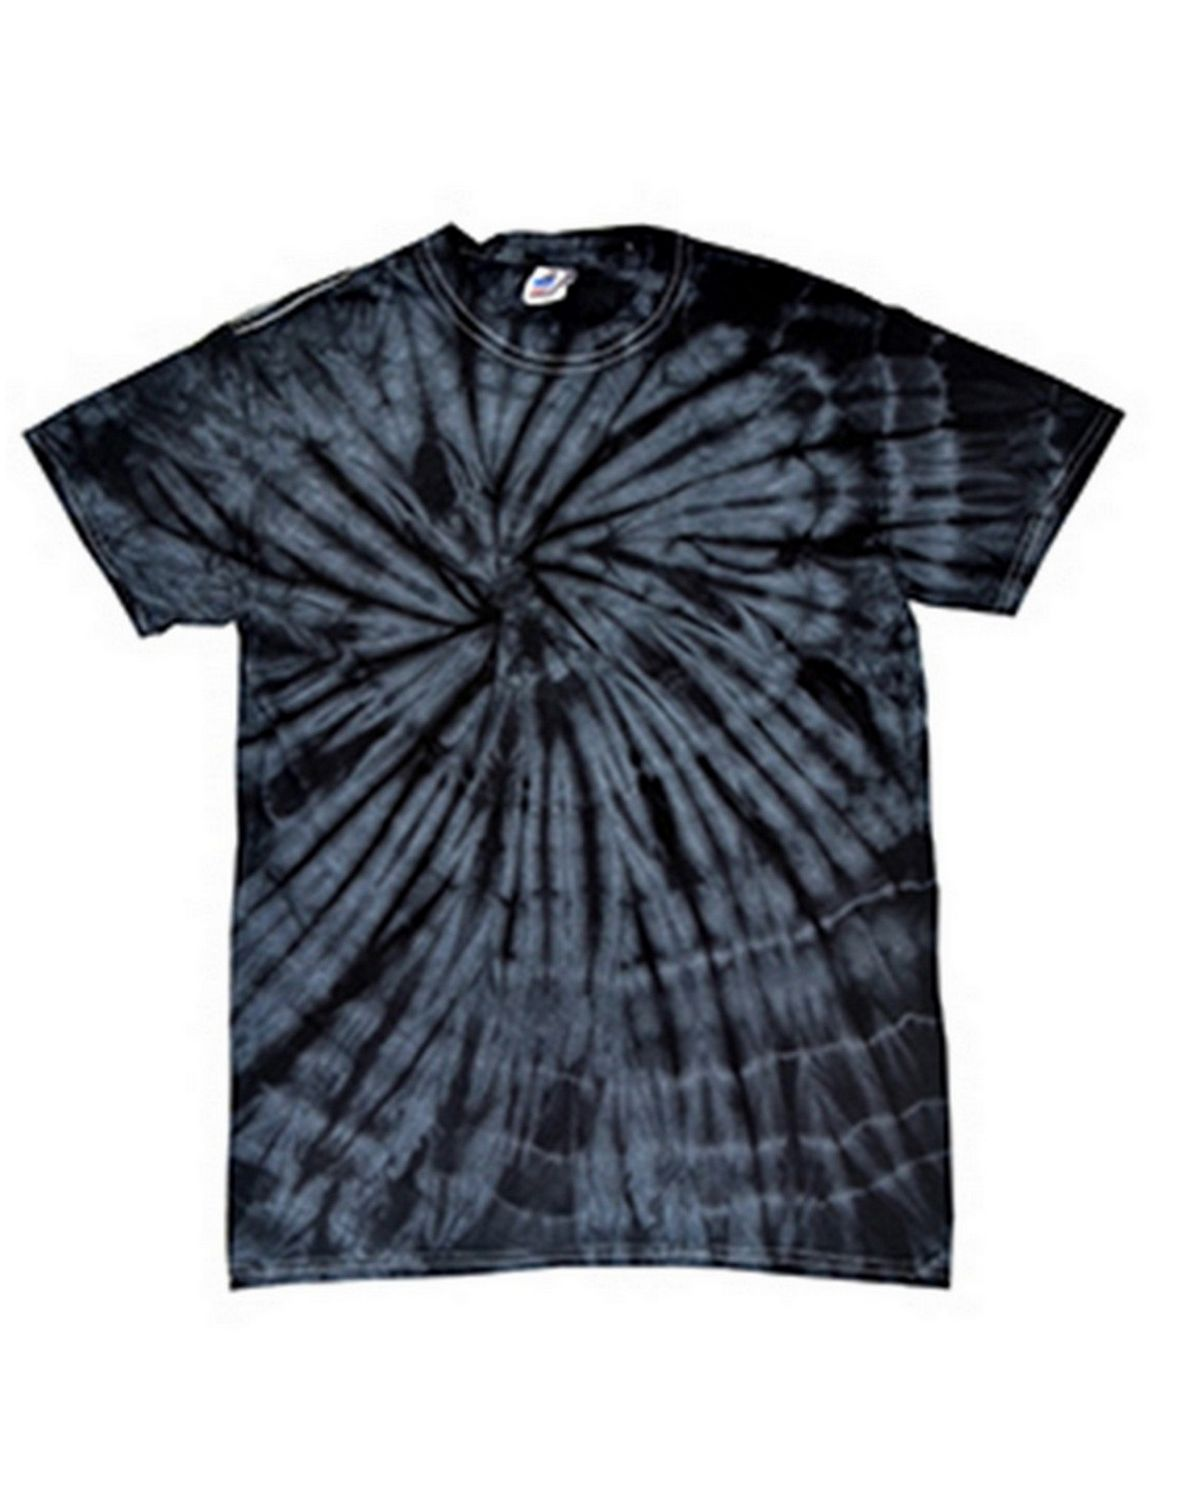 Colortone T1000 Spider Adult Tee - Black - 3X T1000